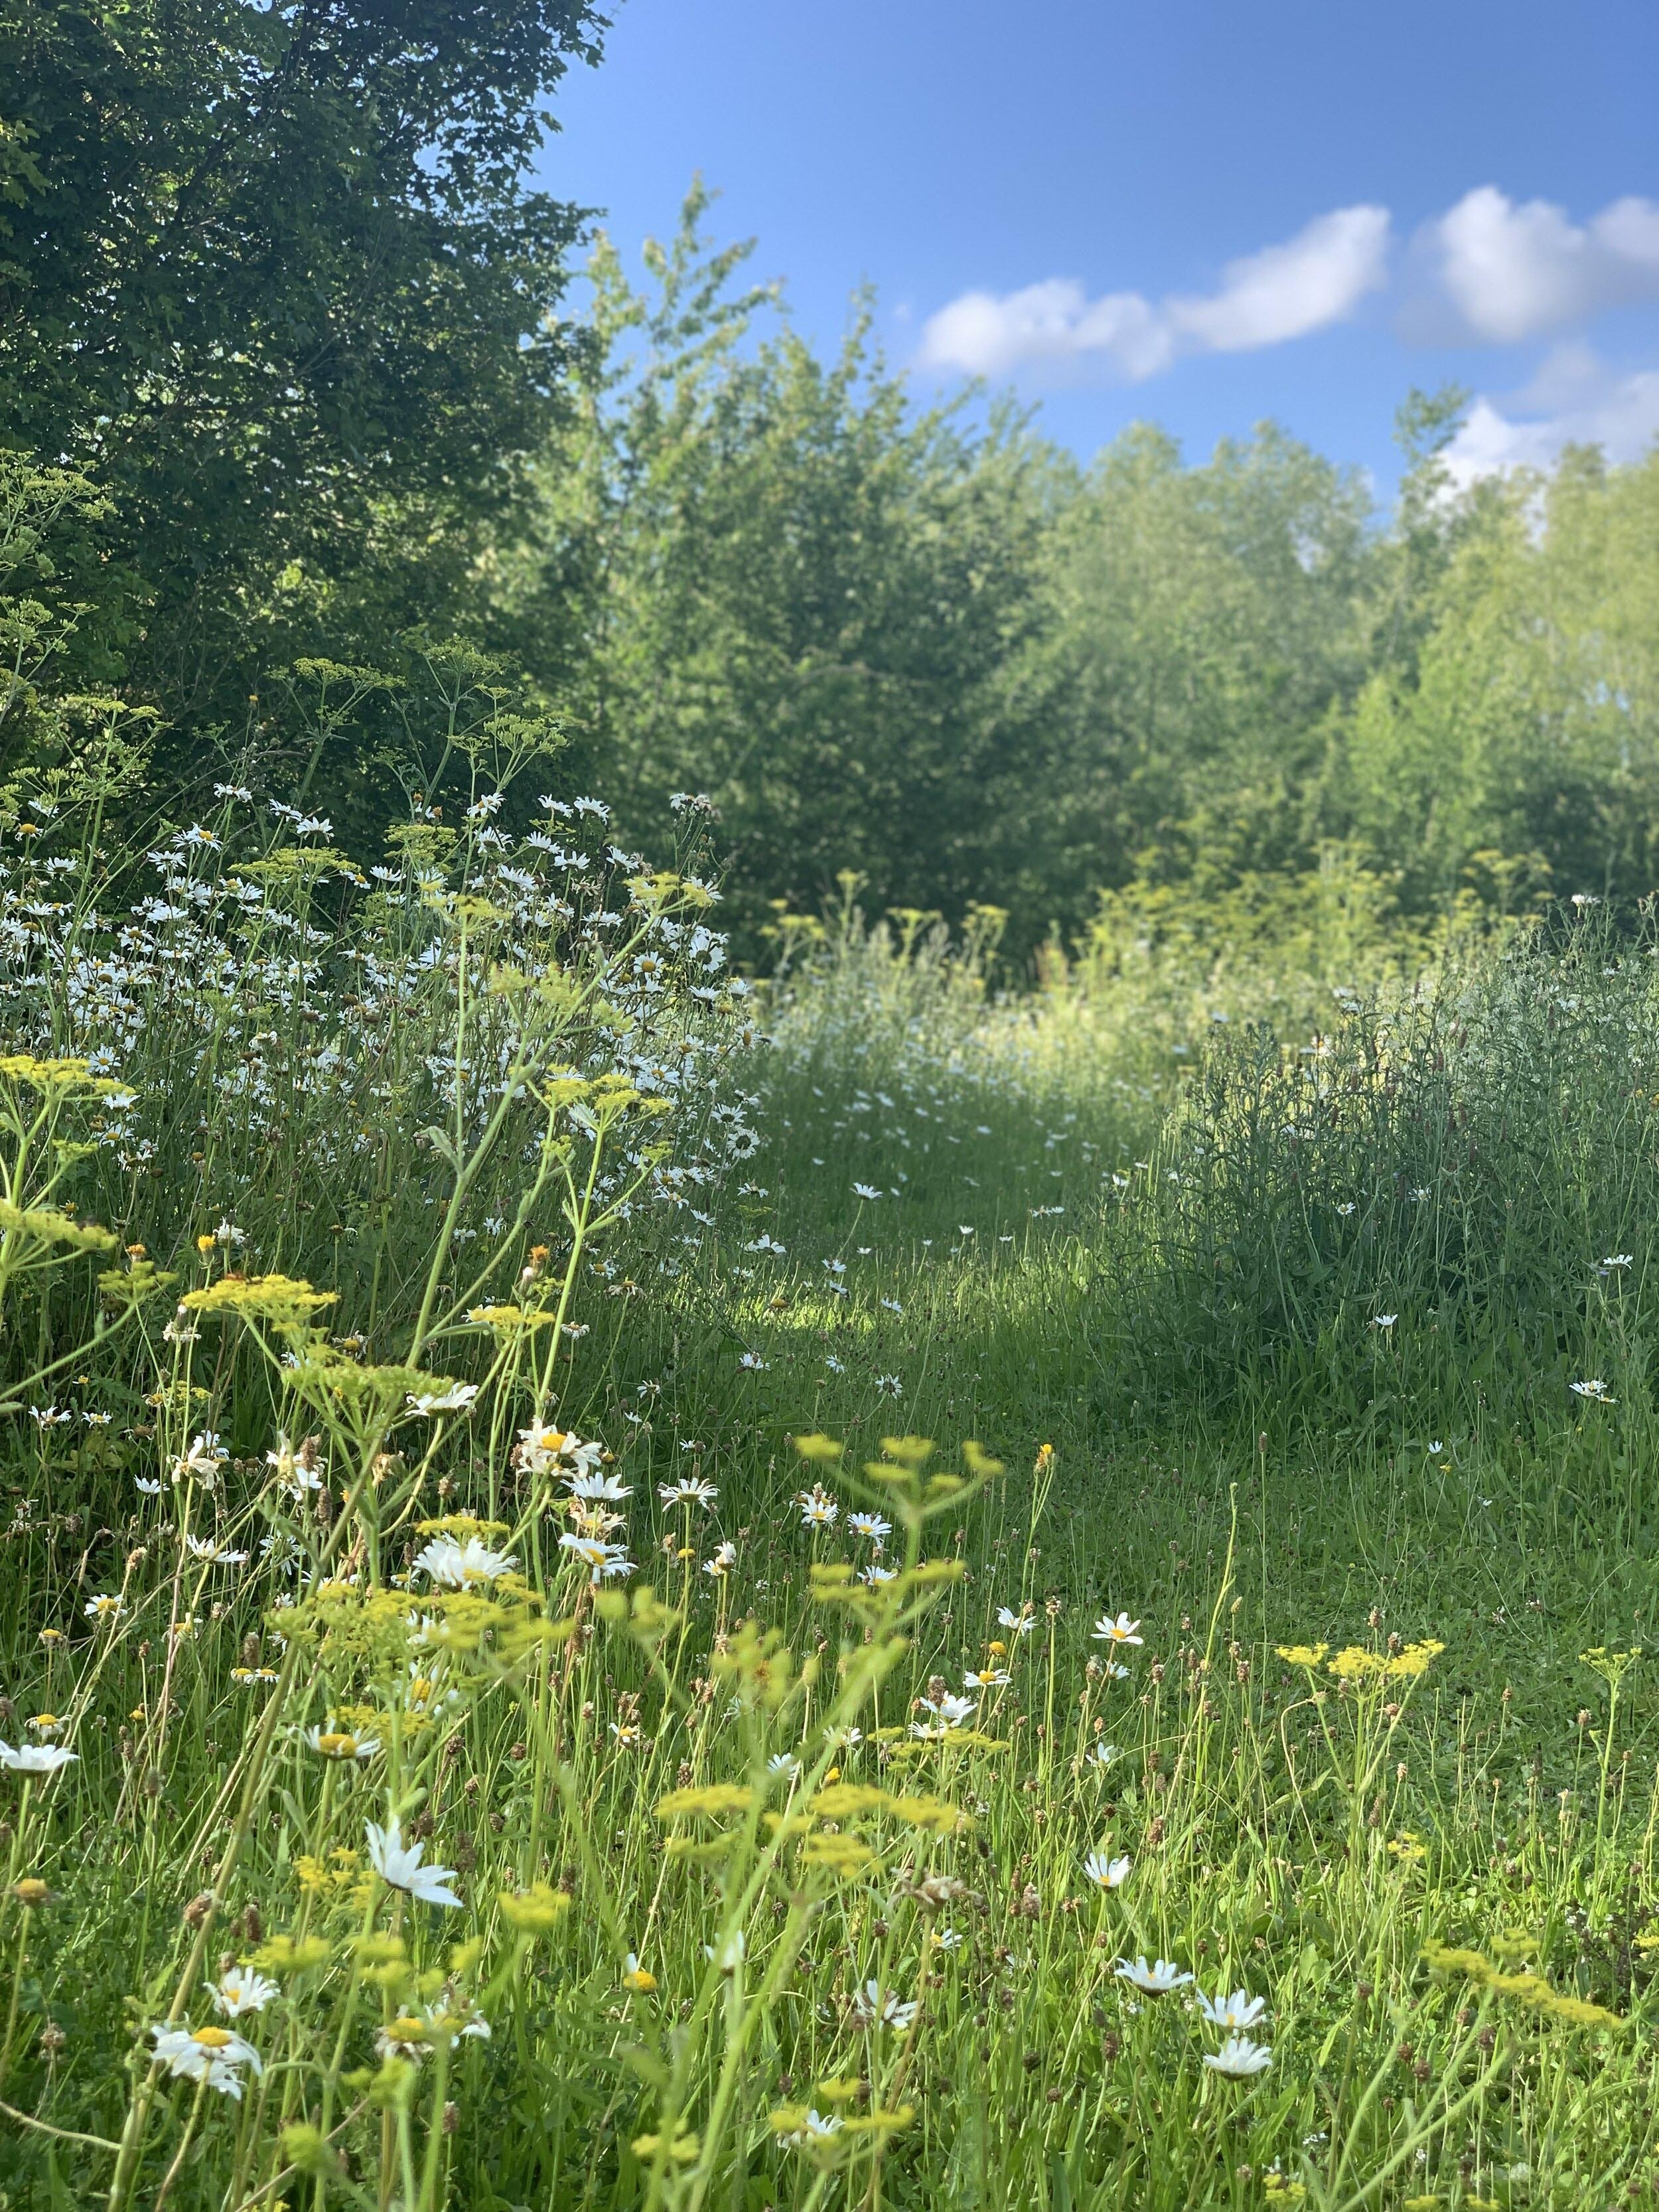 Image of the Arbory Trust Meadow